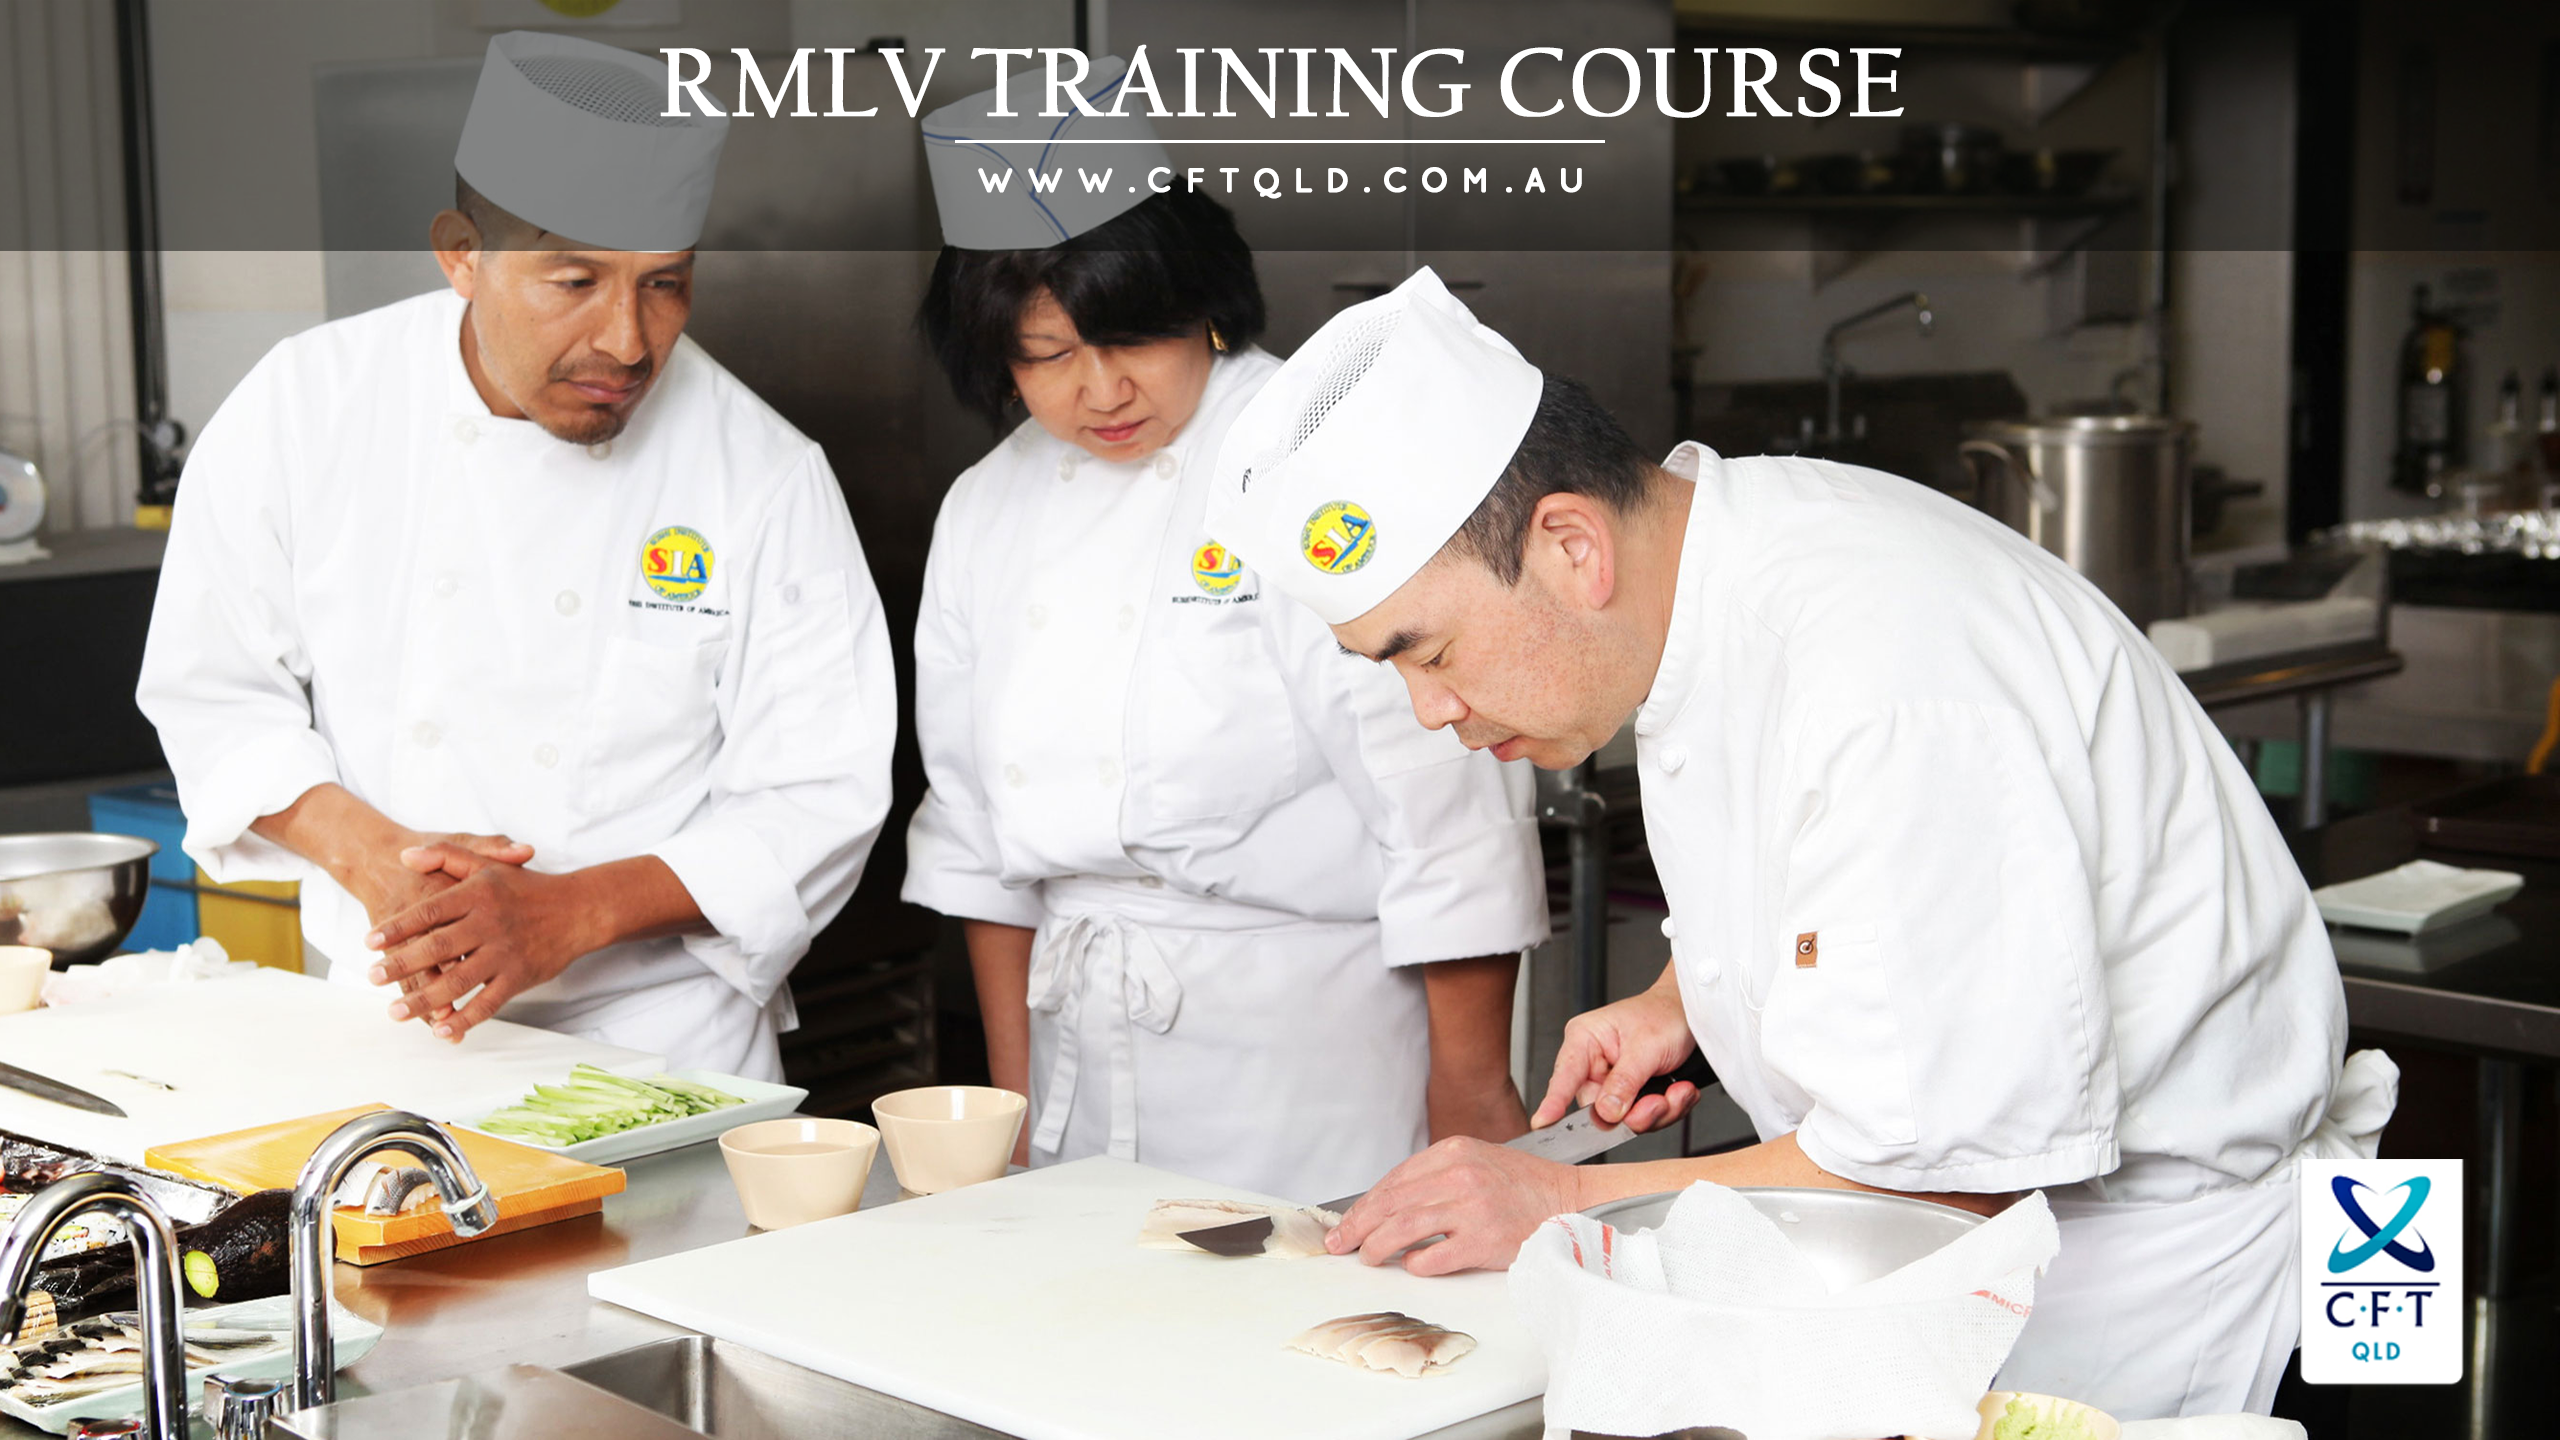 RMLV training course is offered by CFT QLD in conjunction